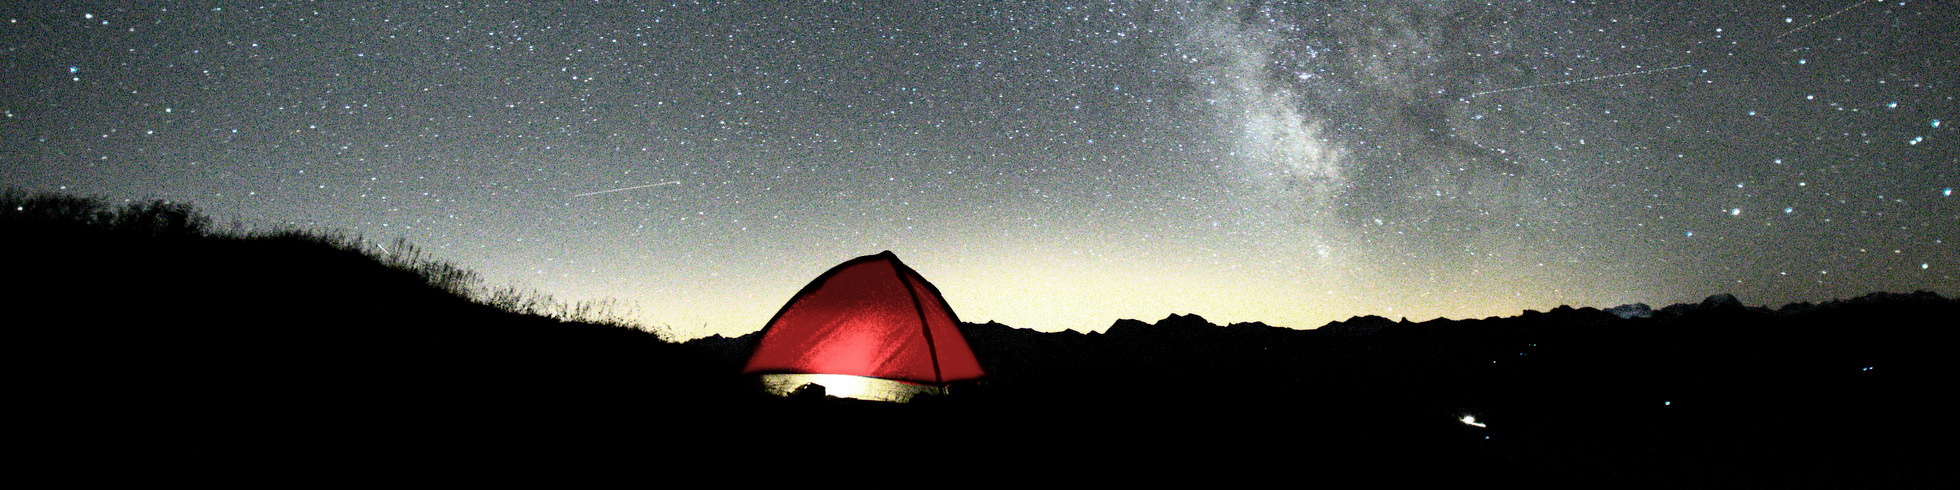 camping under the stars at churfirsten